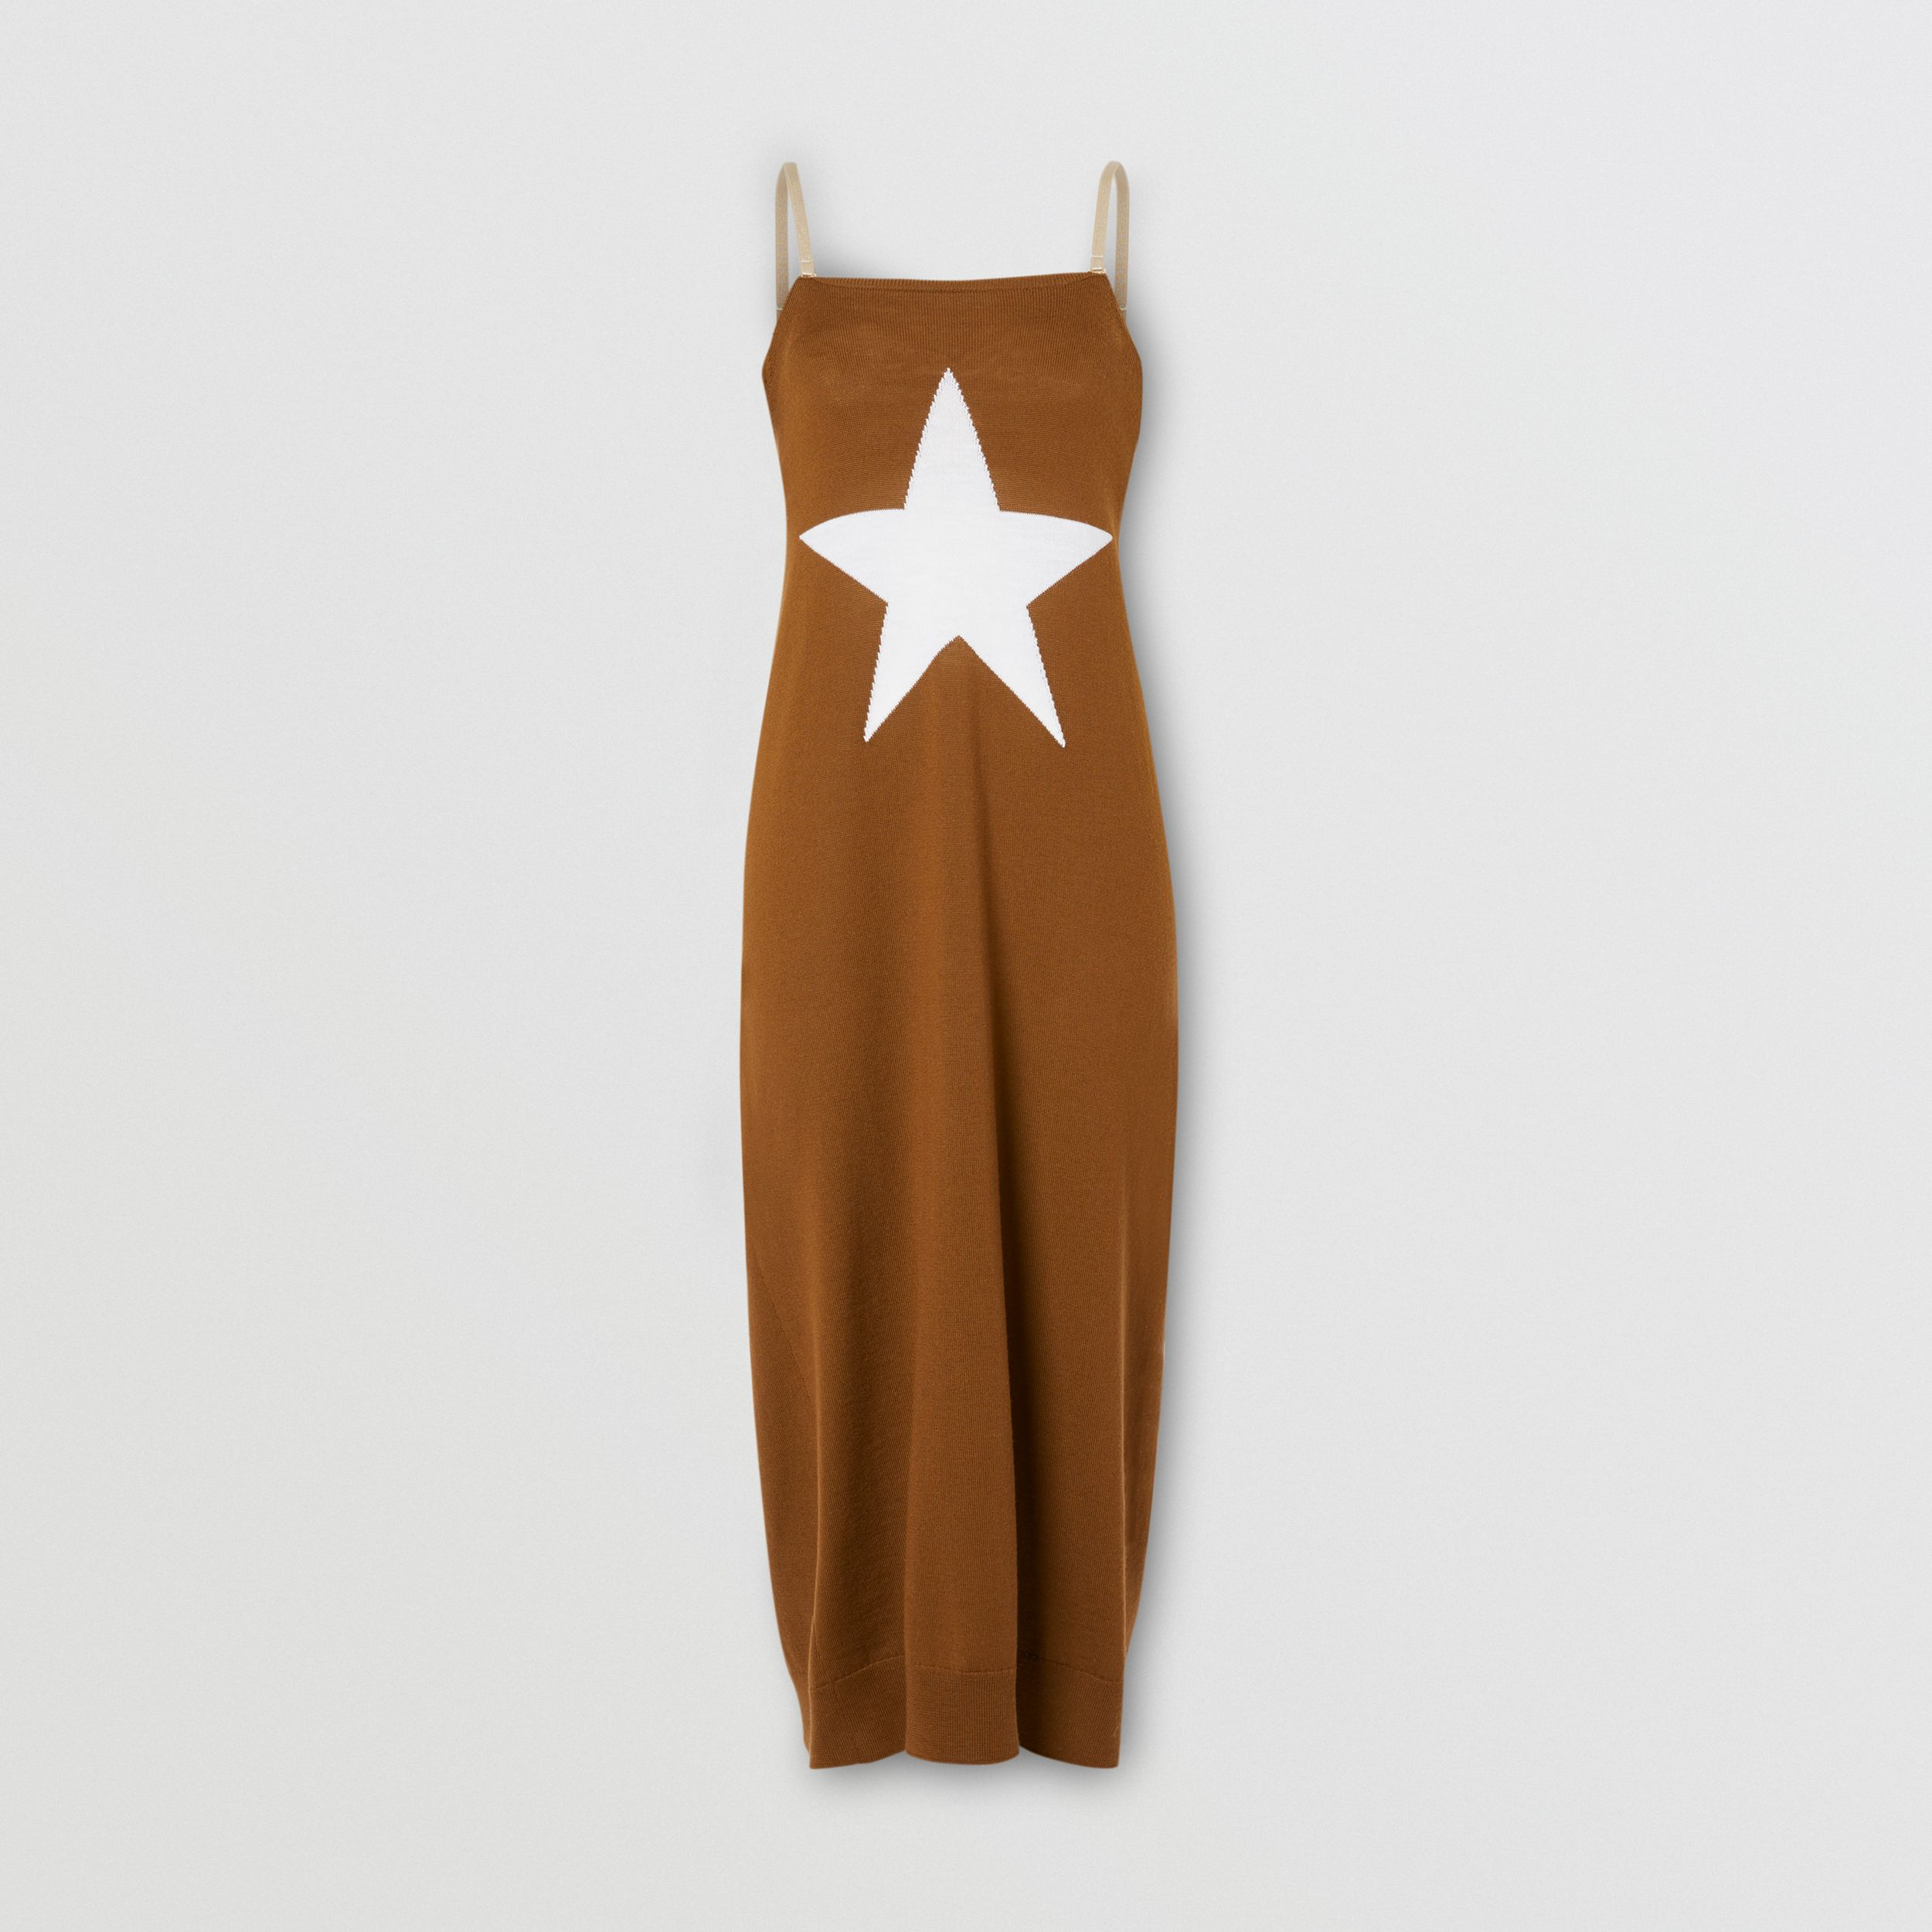 Star Motif Wool Reconstructed Sweater Dress in Mahogany - Women | Burberry Canada - 4